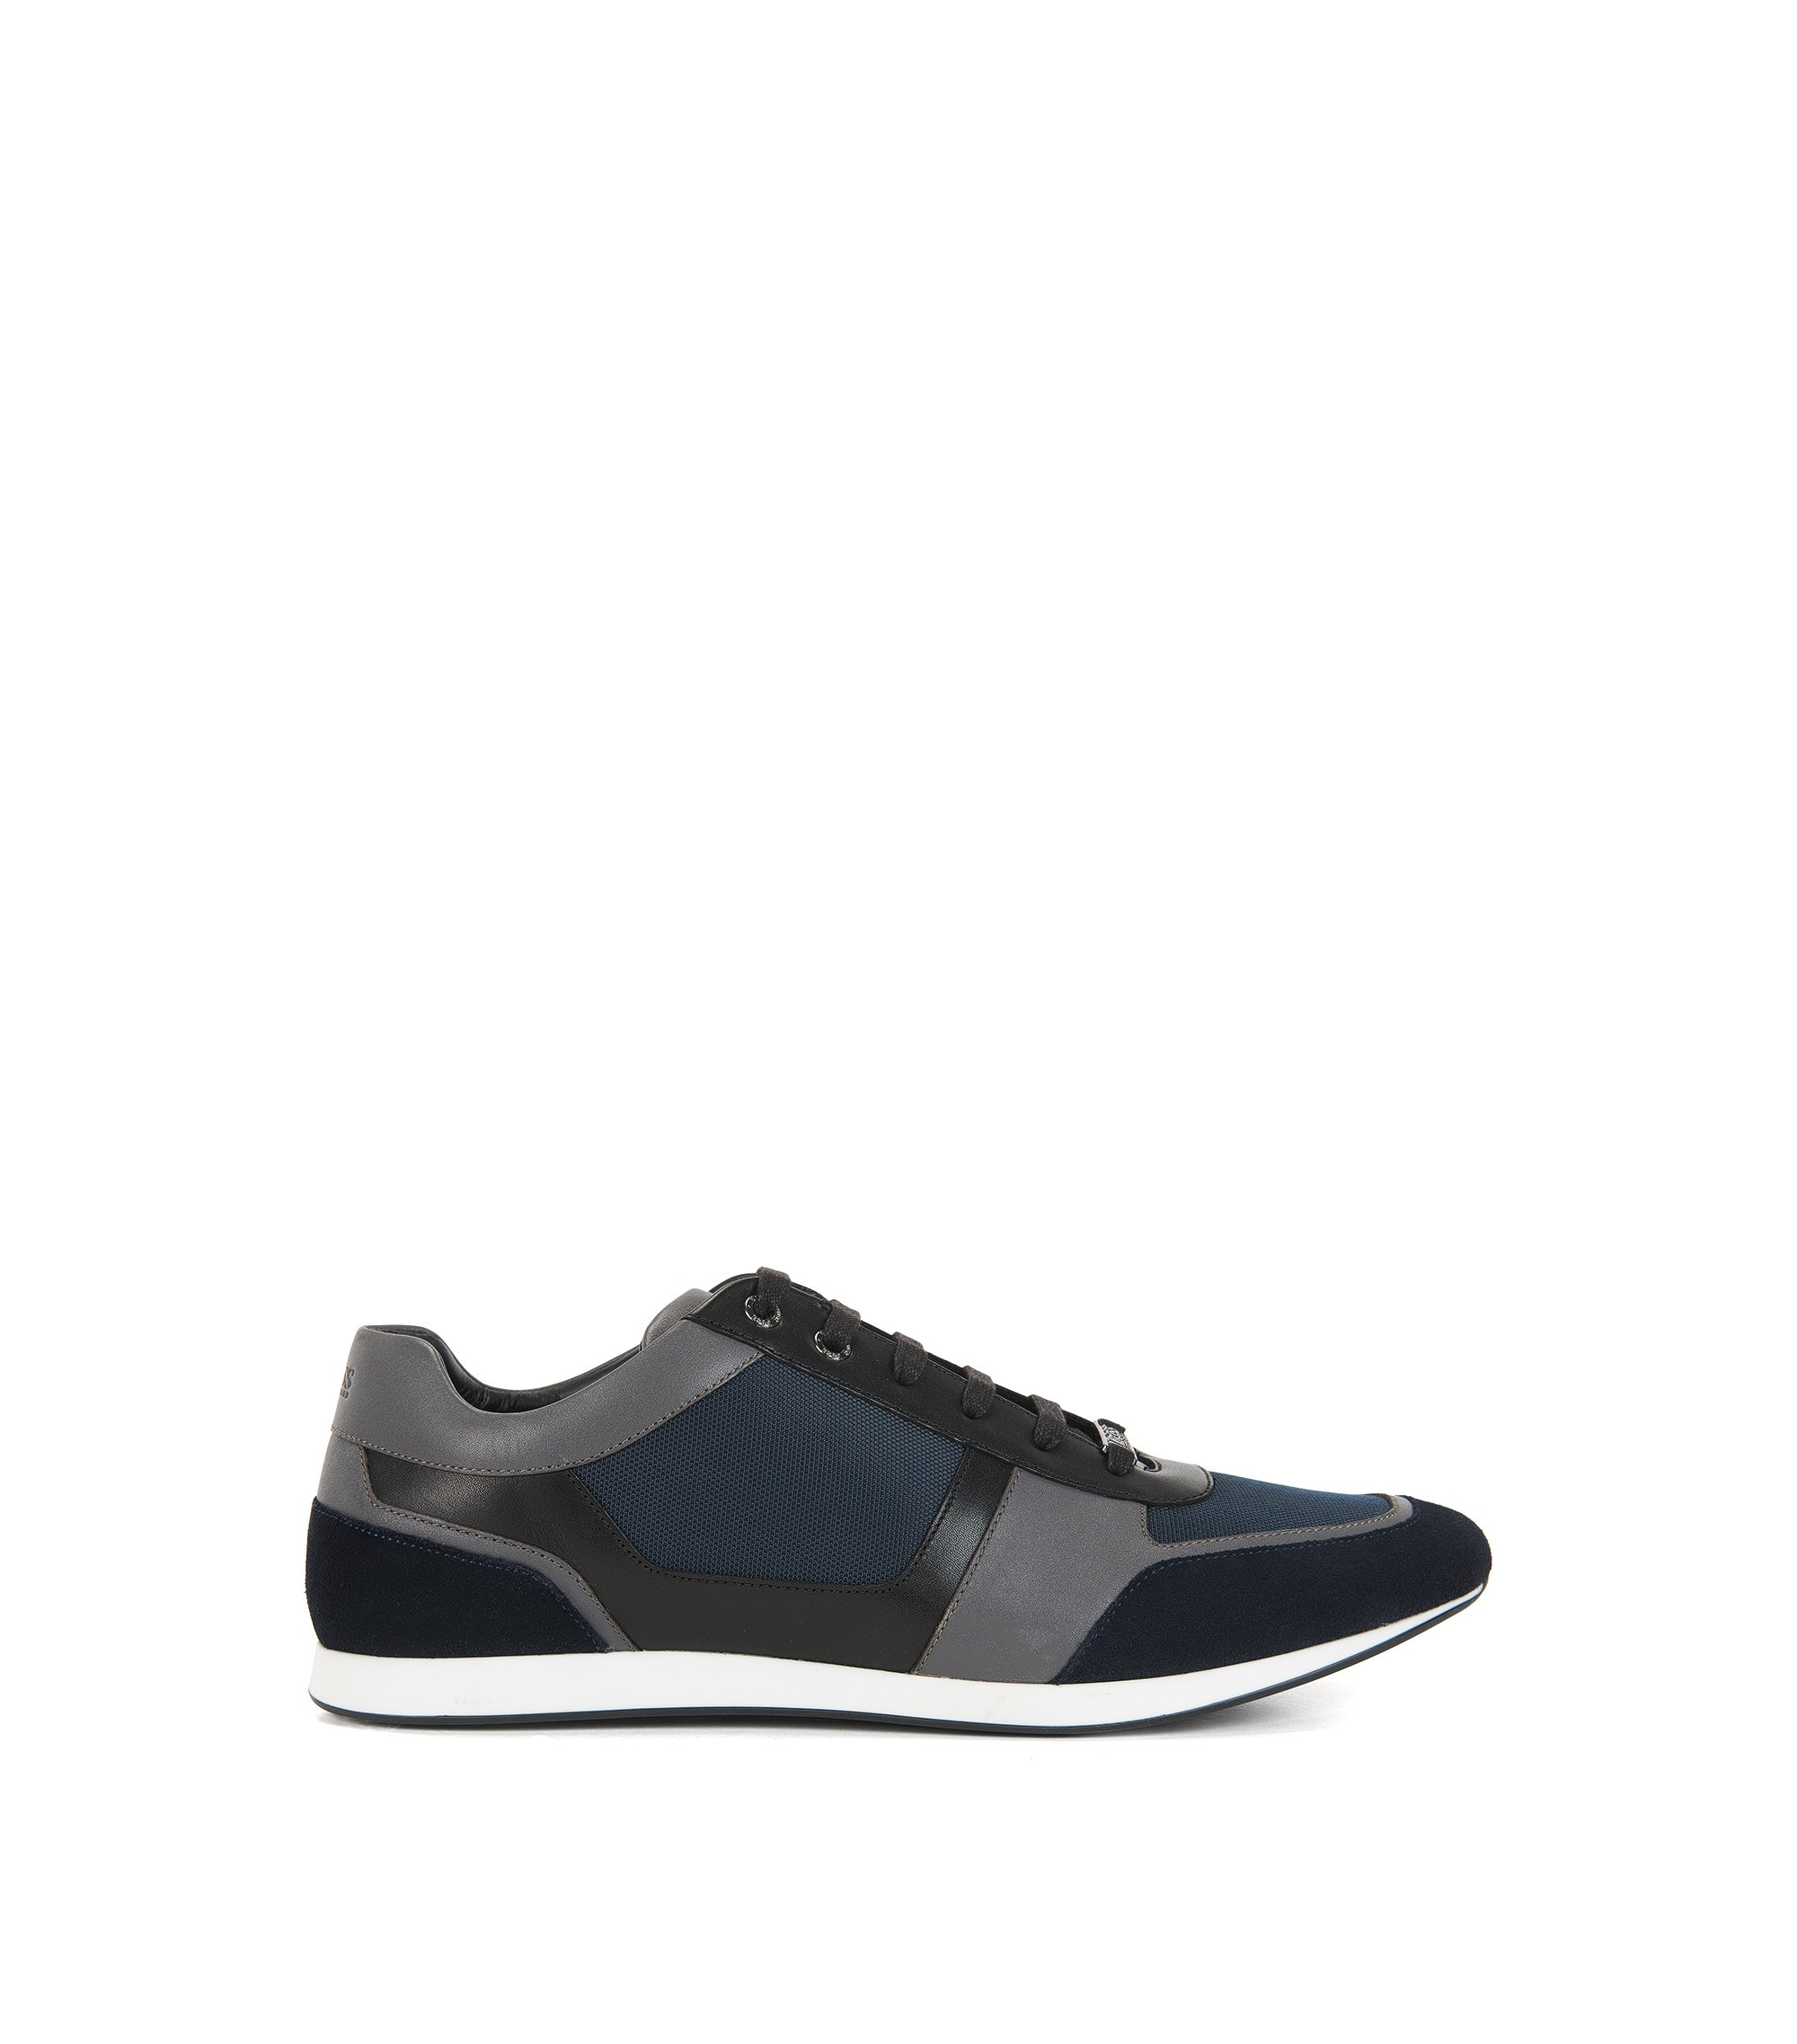 Leather & Suede Sneaker | Fulltime Lowp Mx, Dark Blue